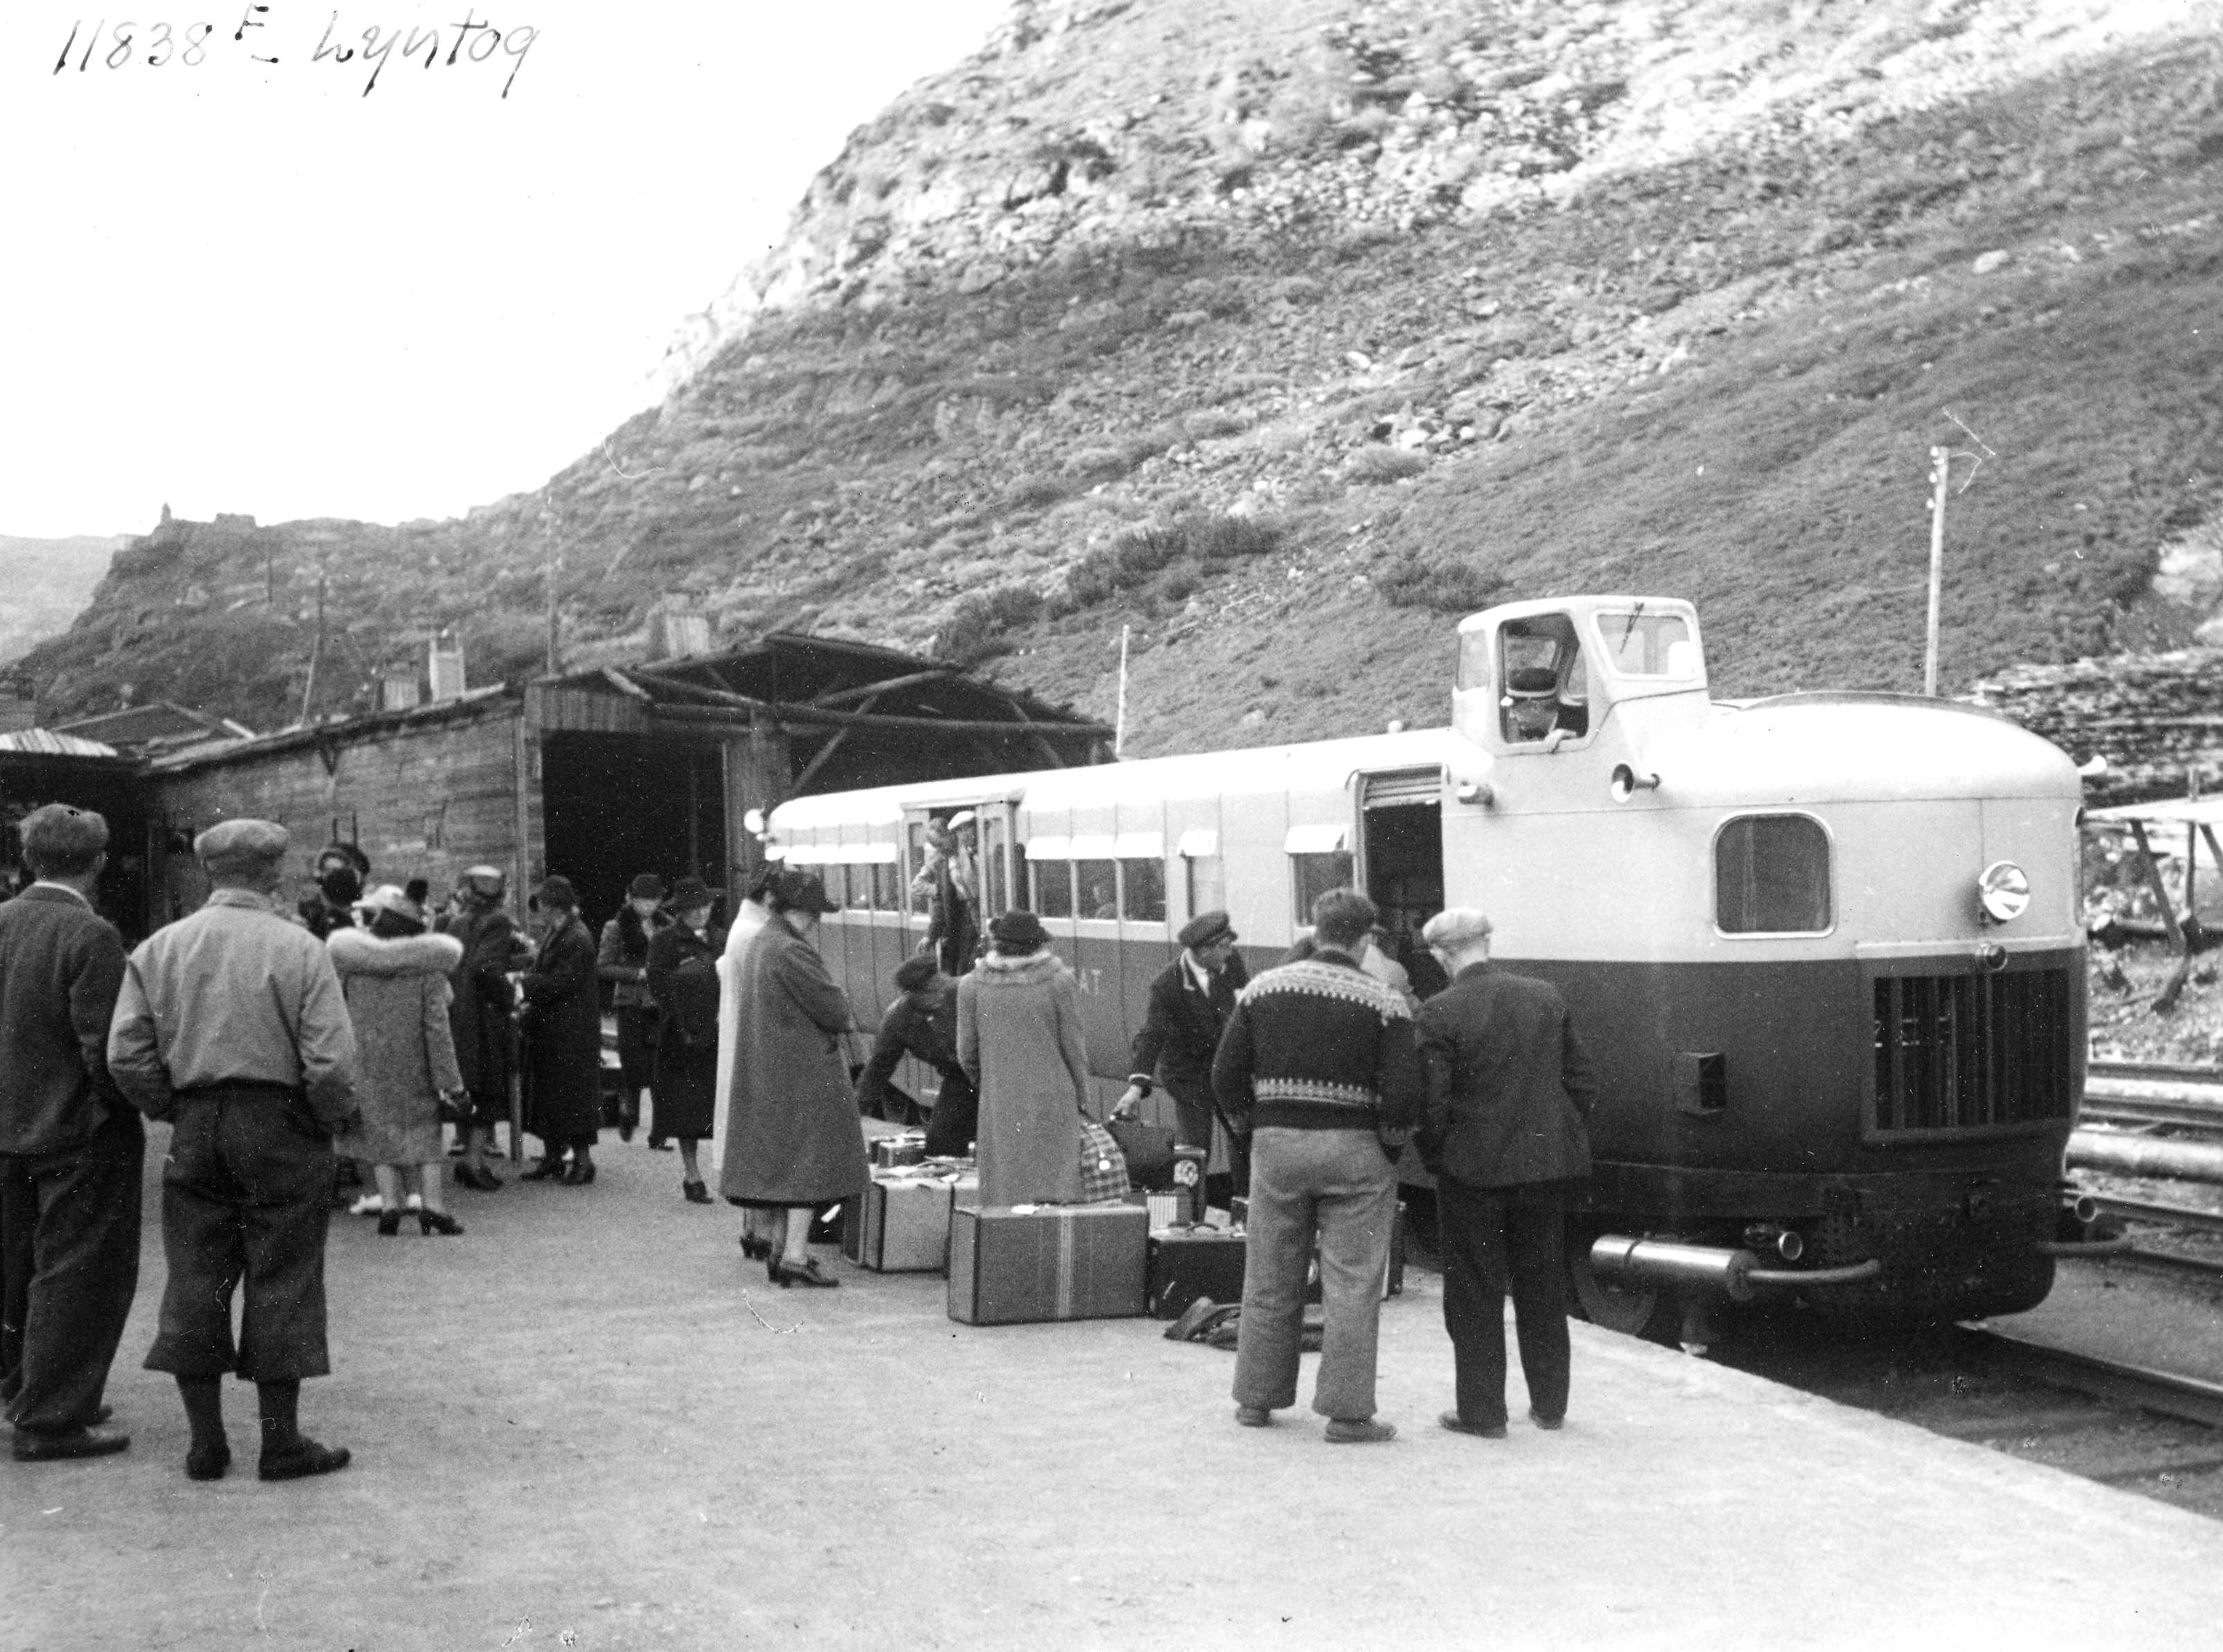 Tog Myrdal Stasjon Digitaltmuseum No Street Cars Recreational Vehicles Train